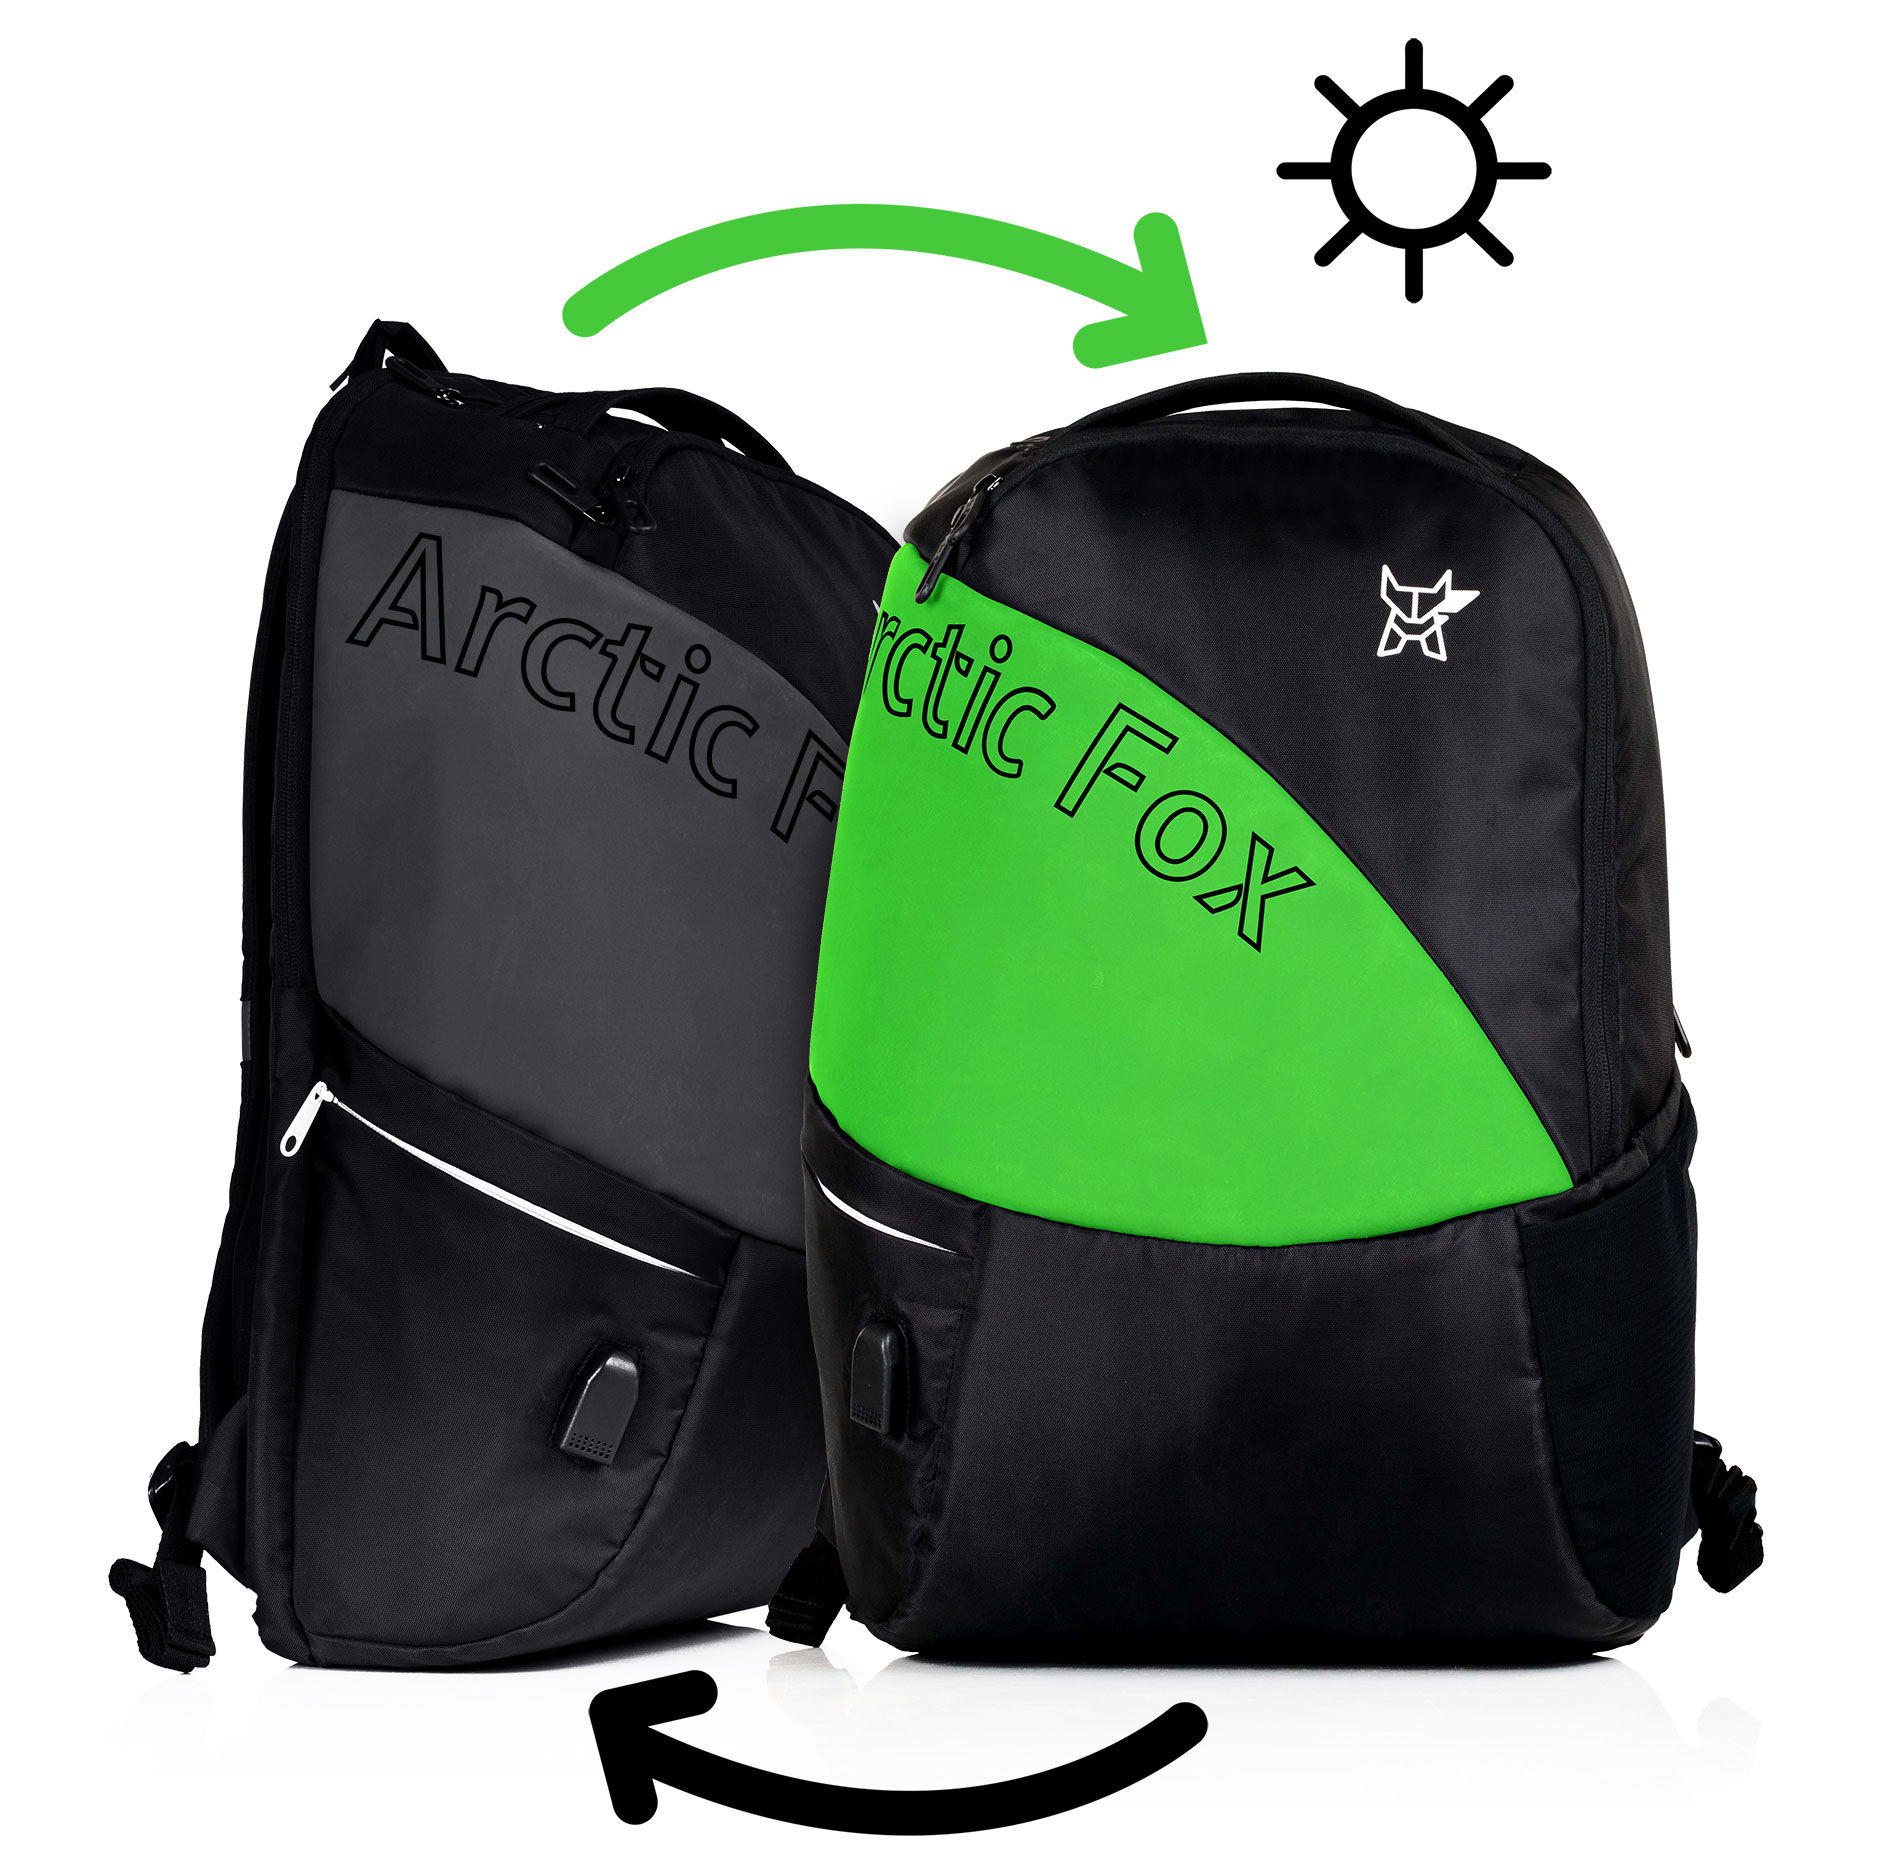 Bangalore-based Arctic Fox launches Colour Changing Backpacks with USB Port  - Shoes   Accessories 58a11e7bf4ec1